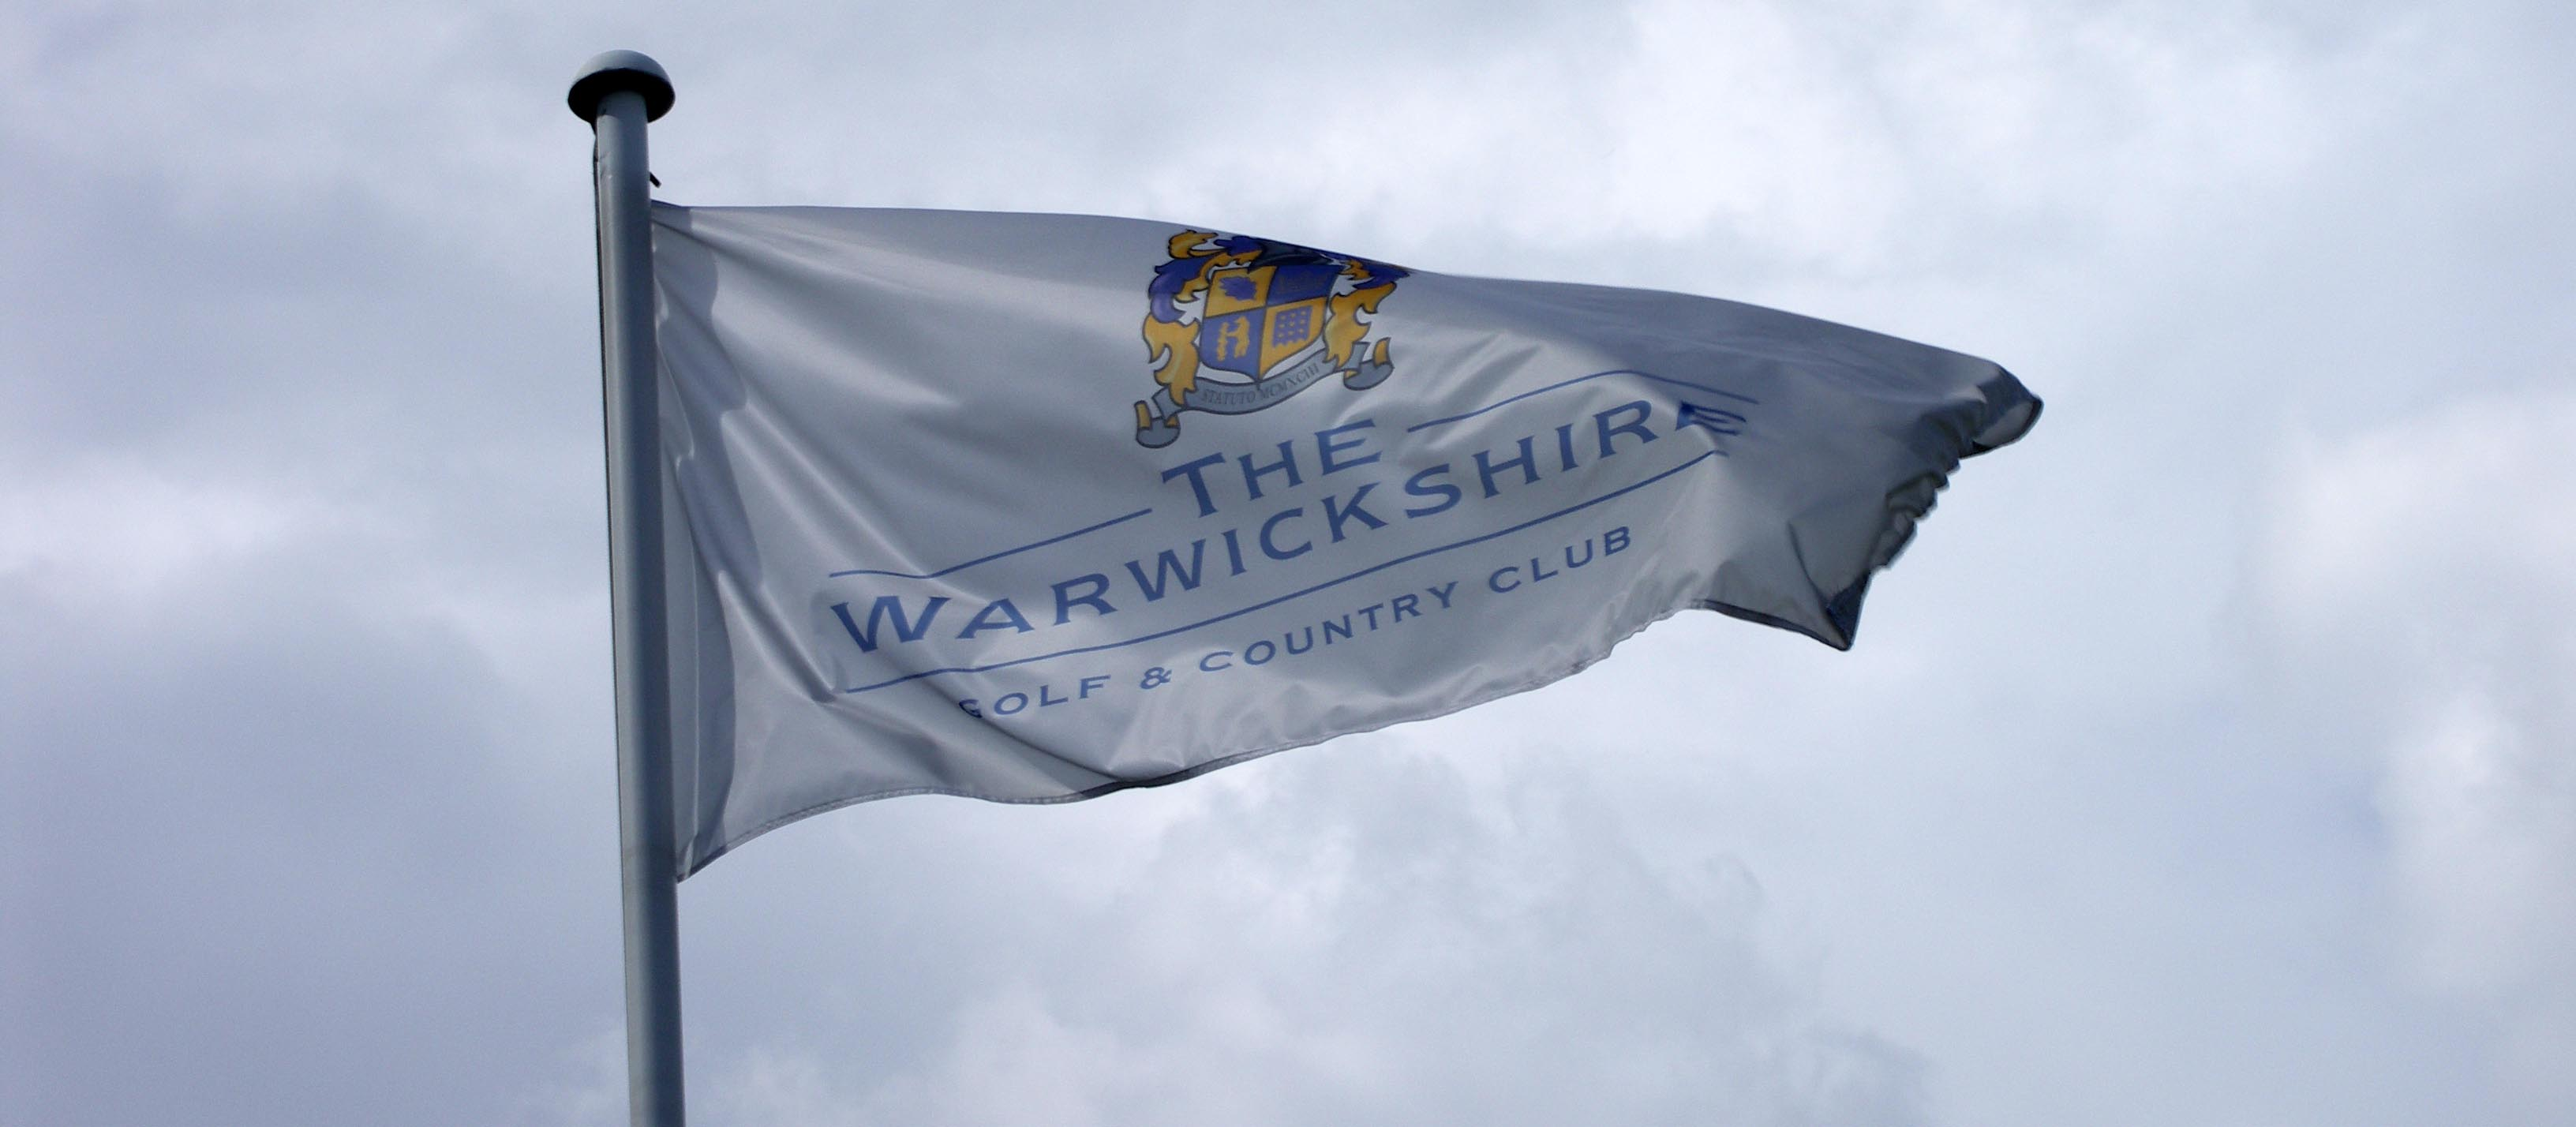 The Warwickshire Golf & Country Club